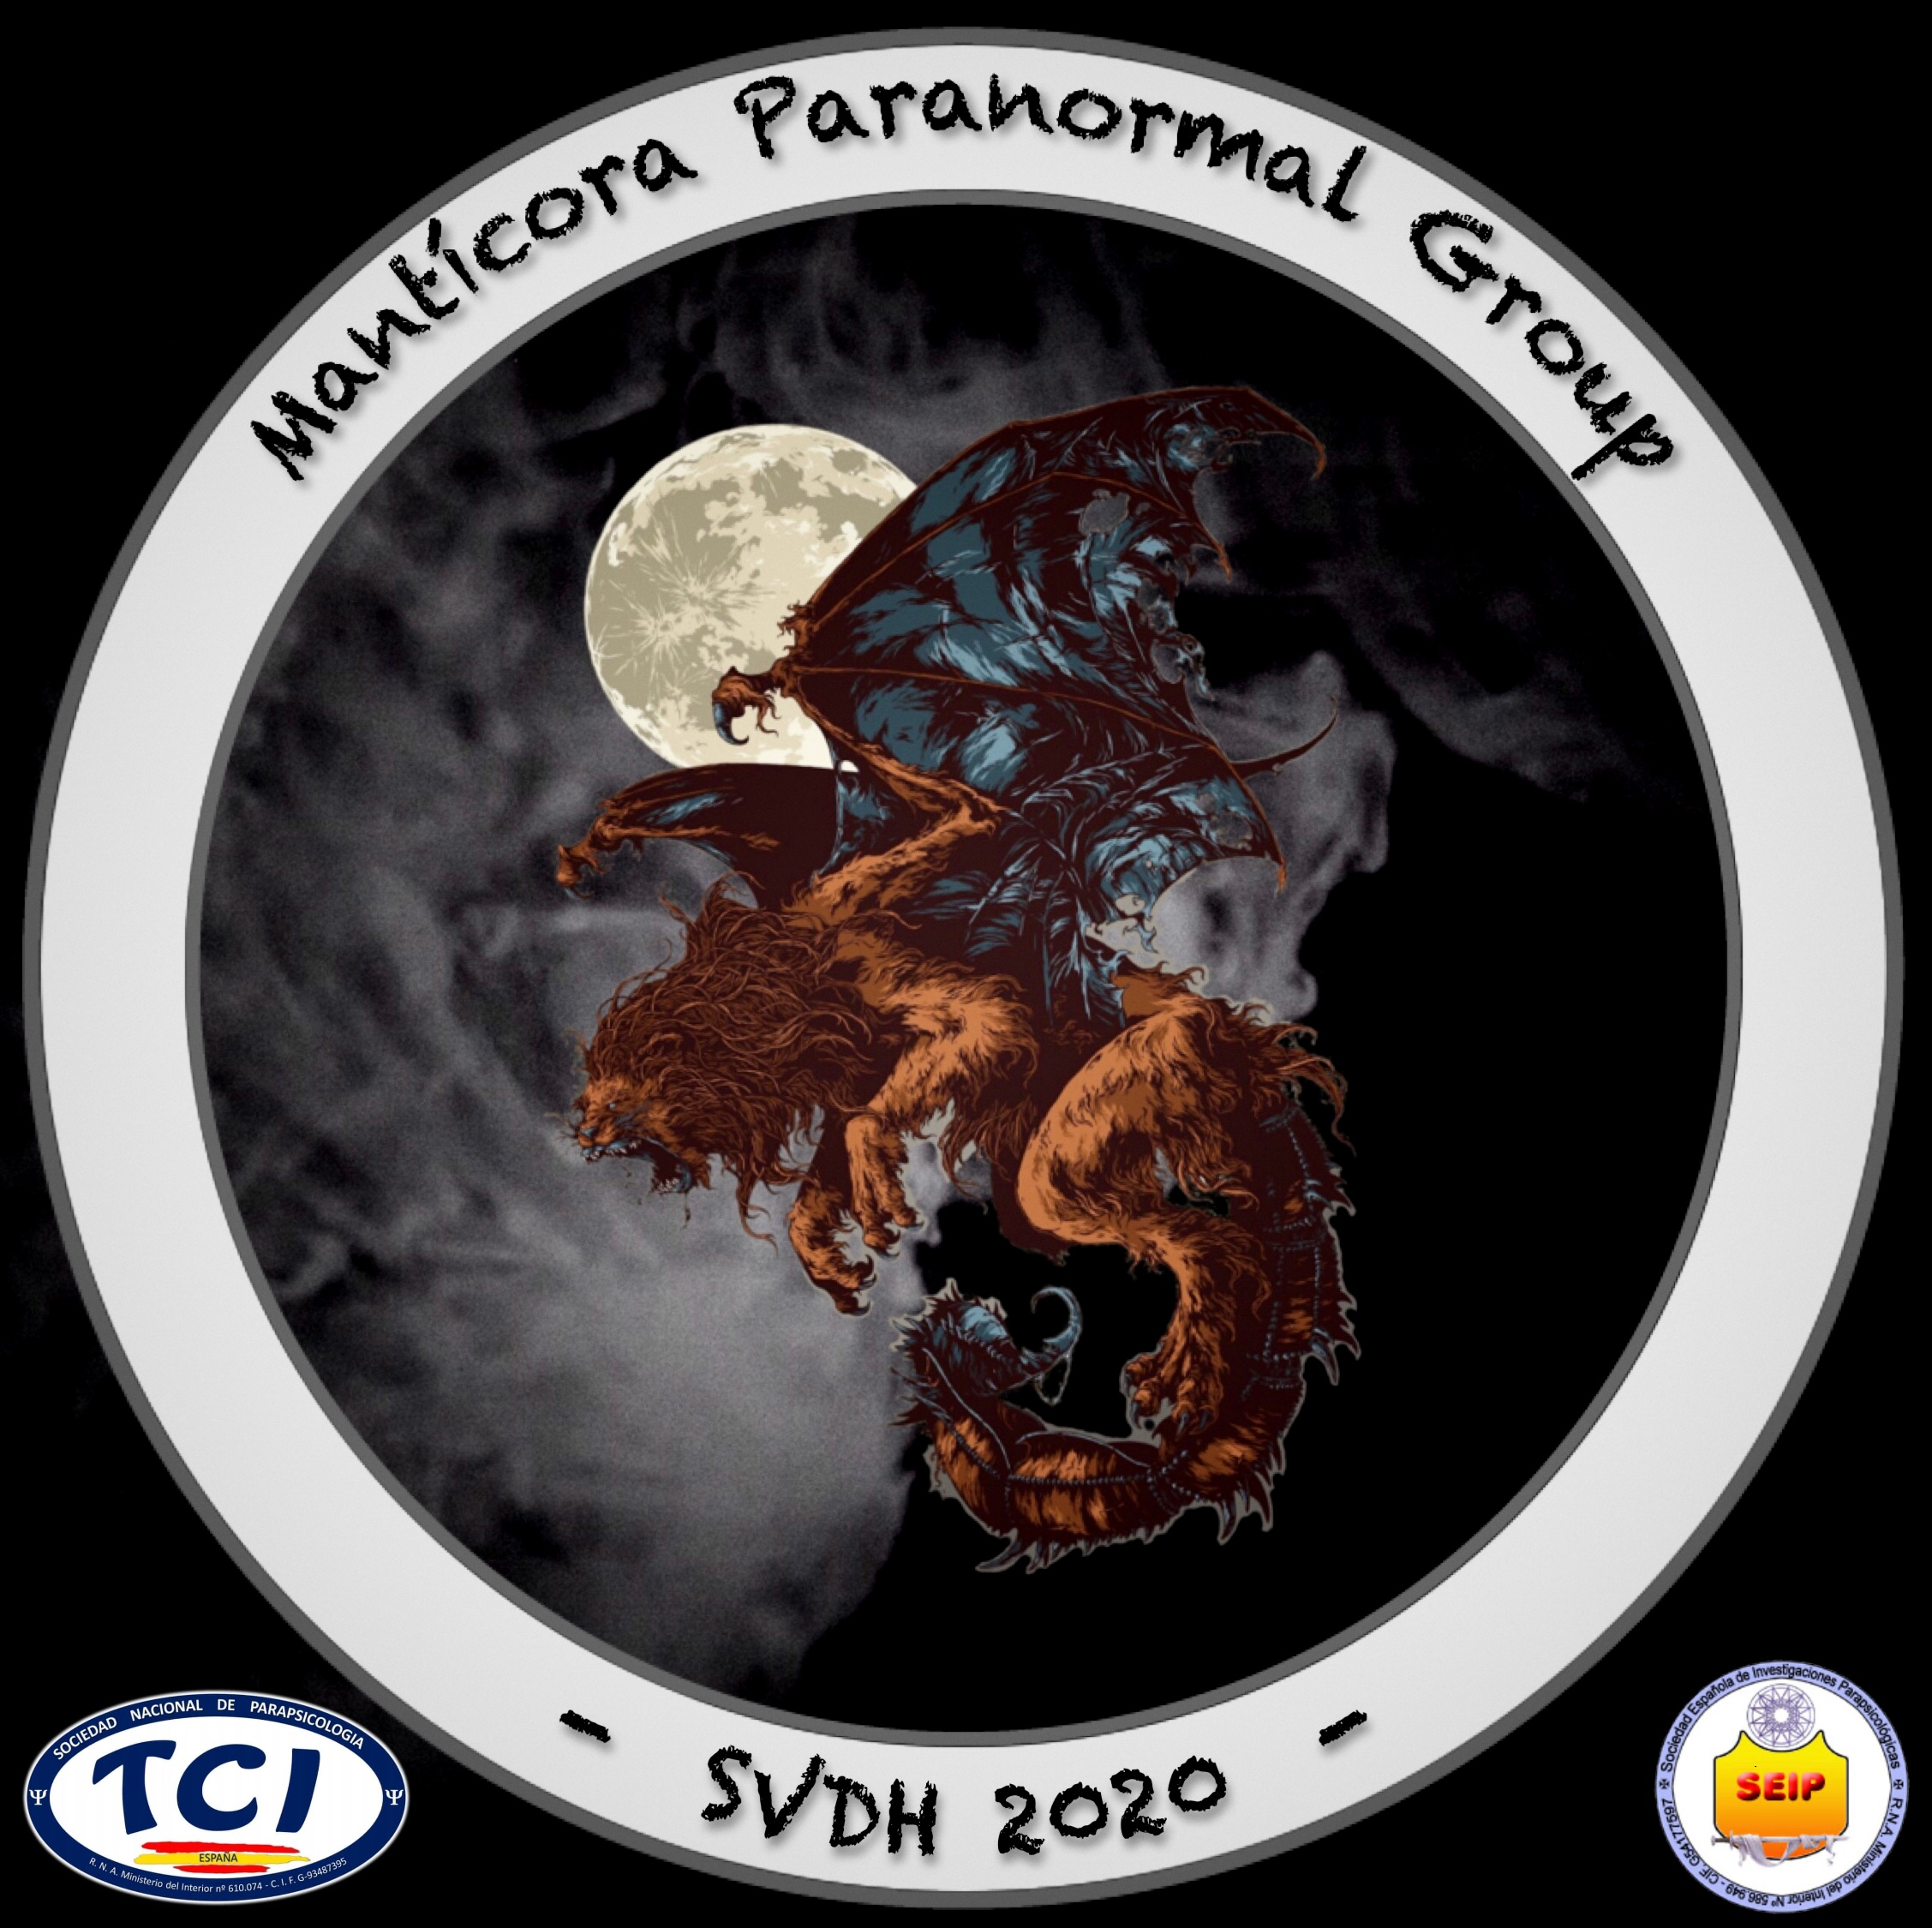 Mantícora Paranormal Group